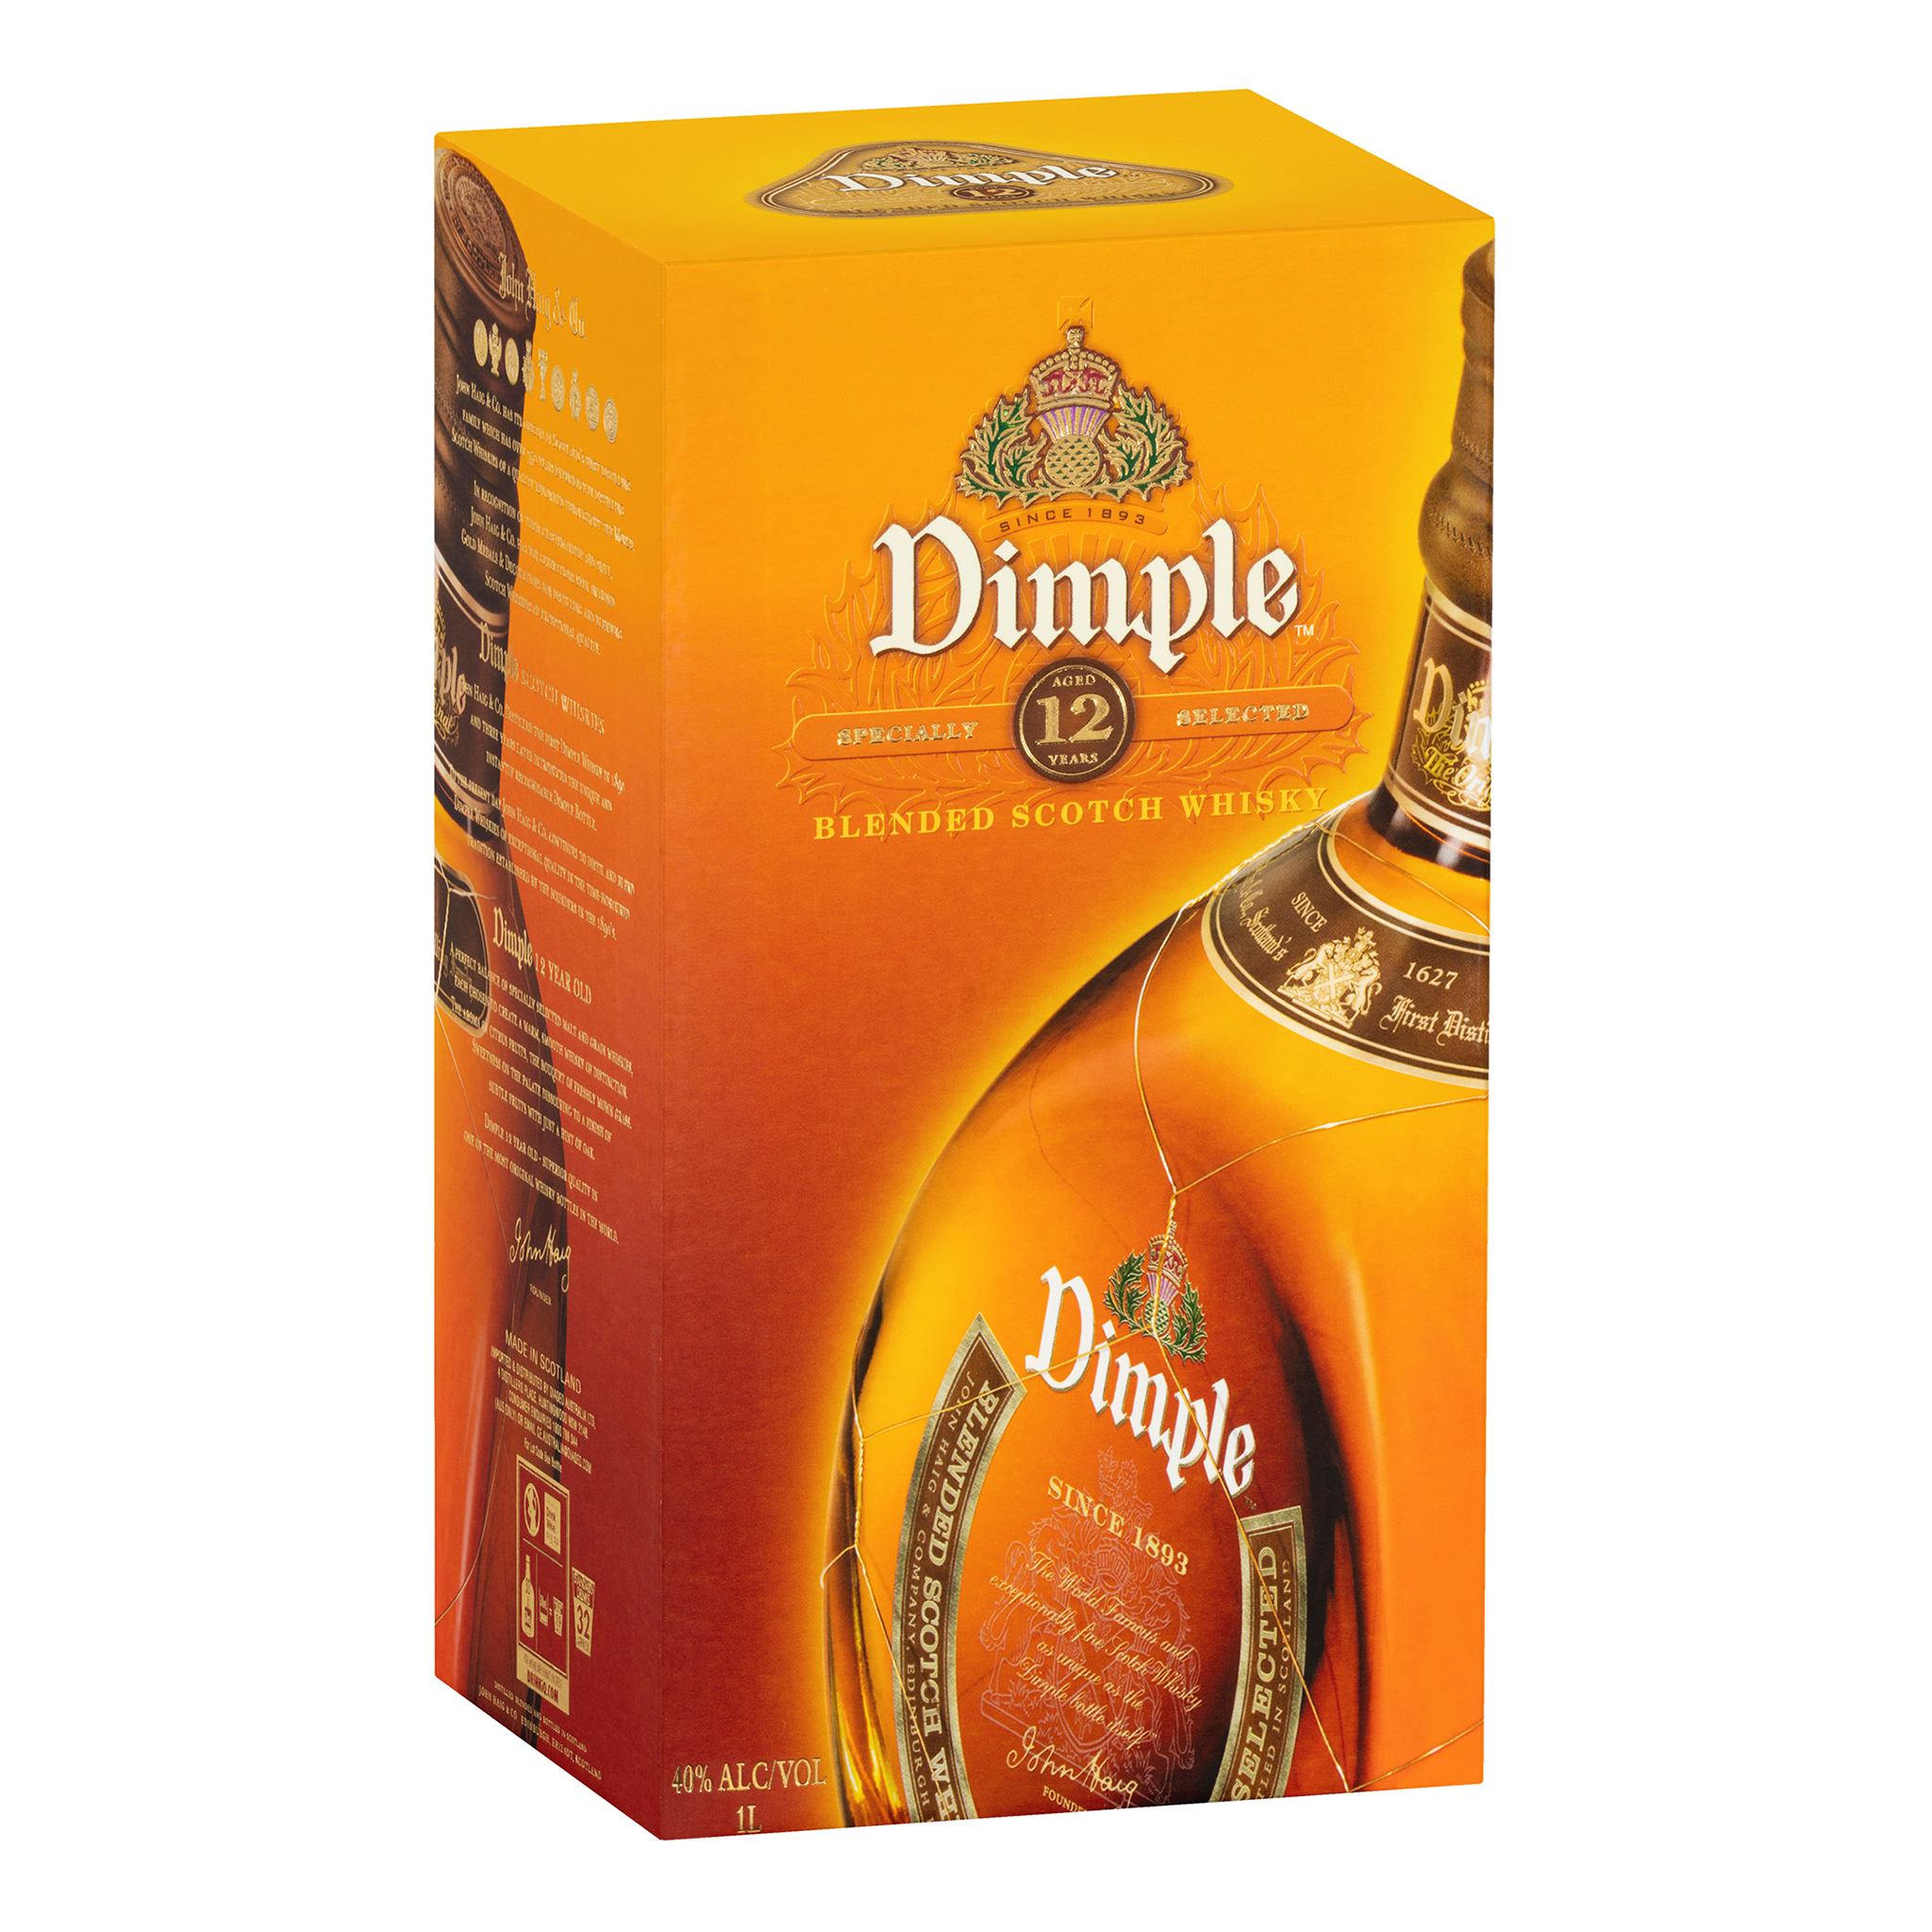 Dimple 12 Year Old Blended Scotch Whisky 700mL - Kent Street Cellars